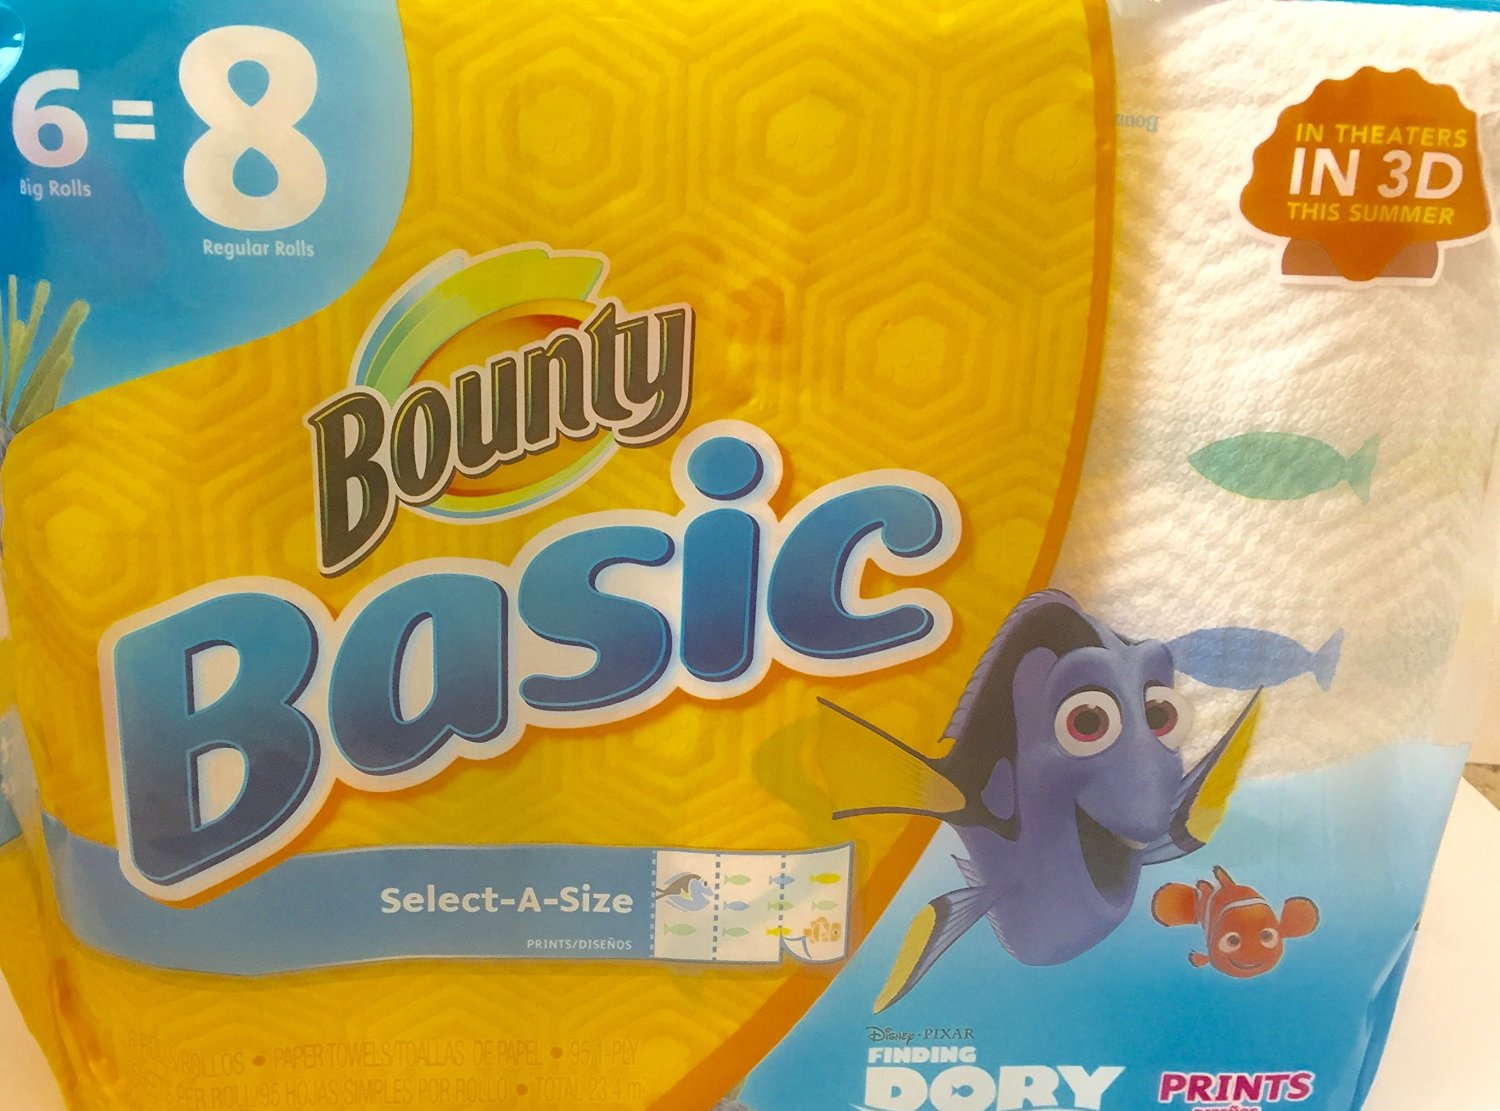 Bounty Basic Select-A-Size Paper Towels, Finding Dory Prints, 6 Big Rolls Equal to 8 Regular Rolls, 6 Count